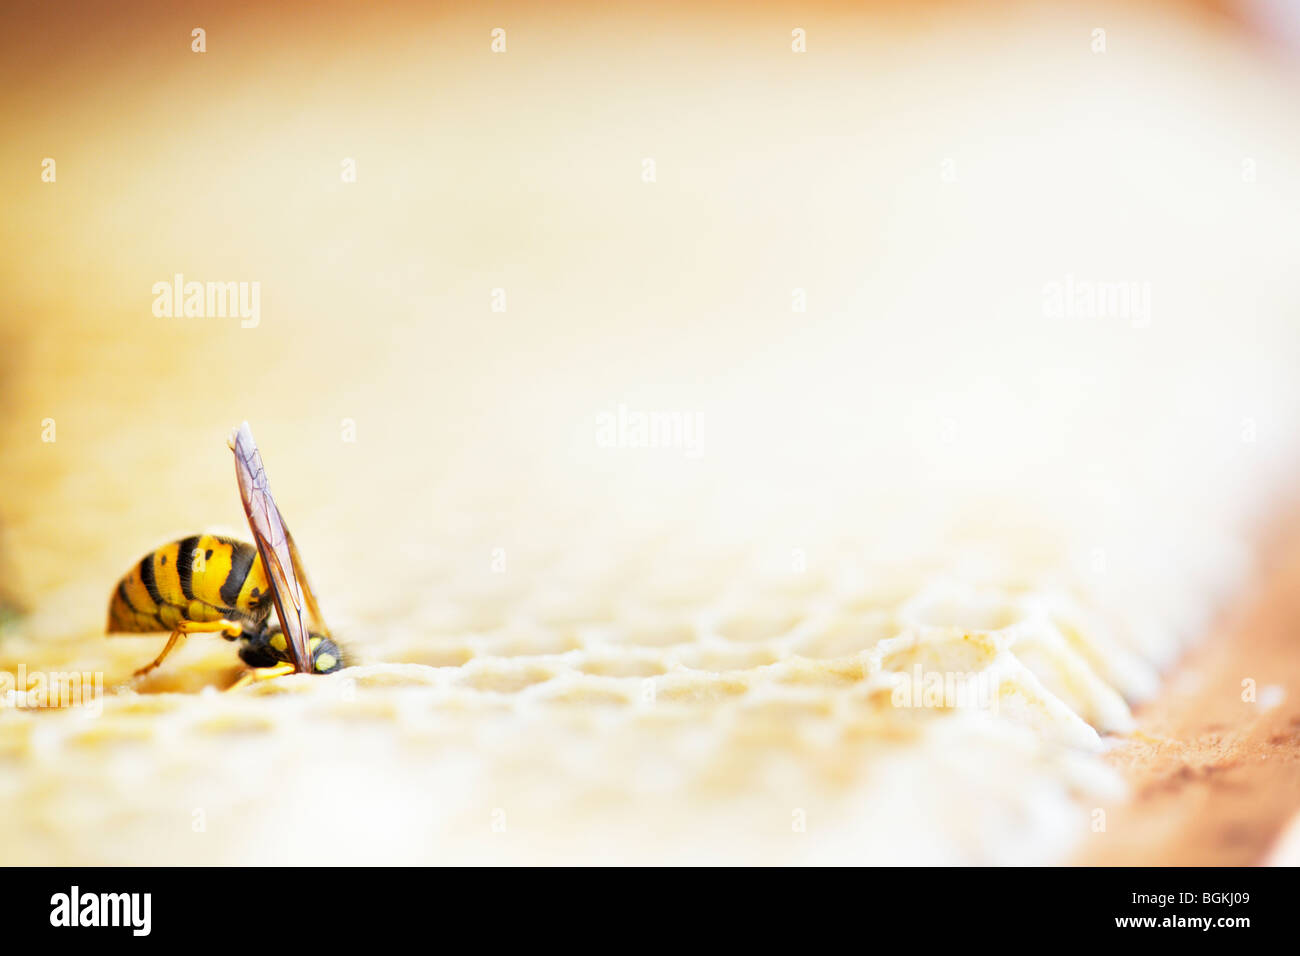 Wasp raiding honeycomb in a beehive - Stock Image